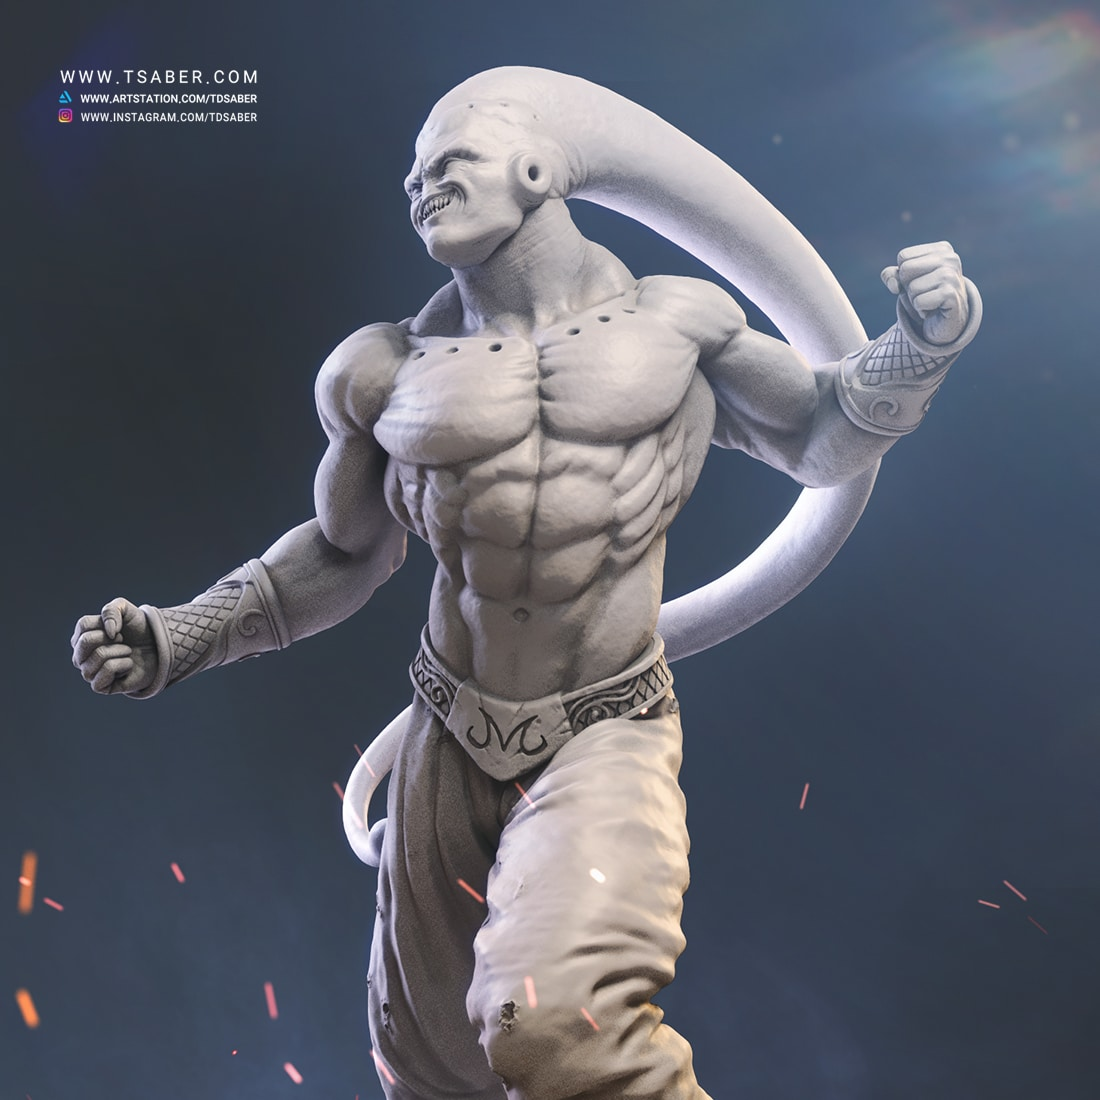 Majin Buu Zbrush statue Sculpture - Dragon Ball Z Fan art - Tsaber